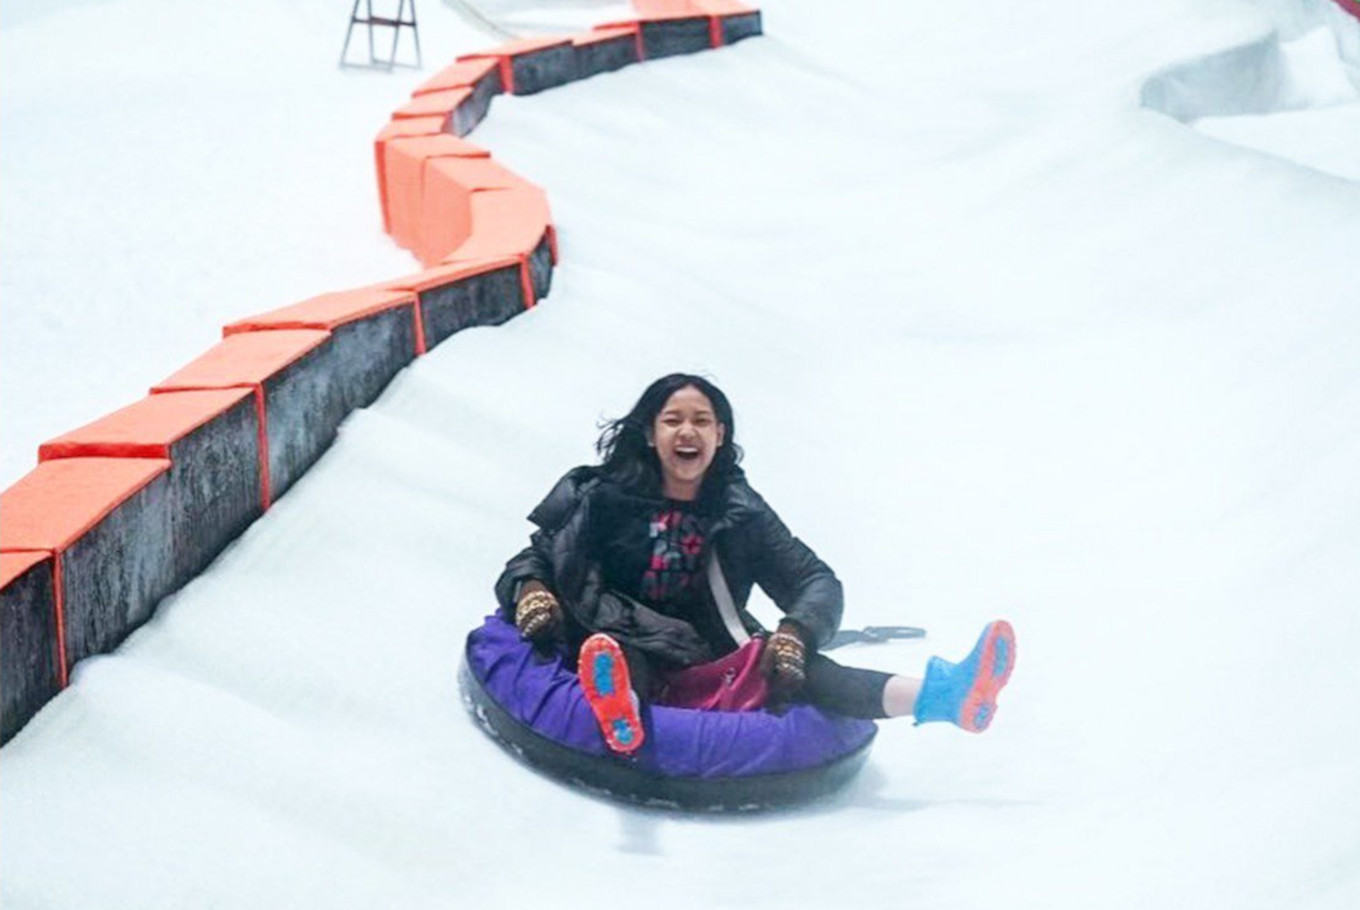 Snow-themed park opens in Bekasi